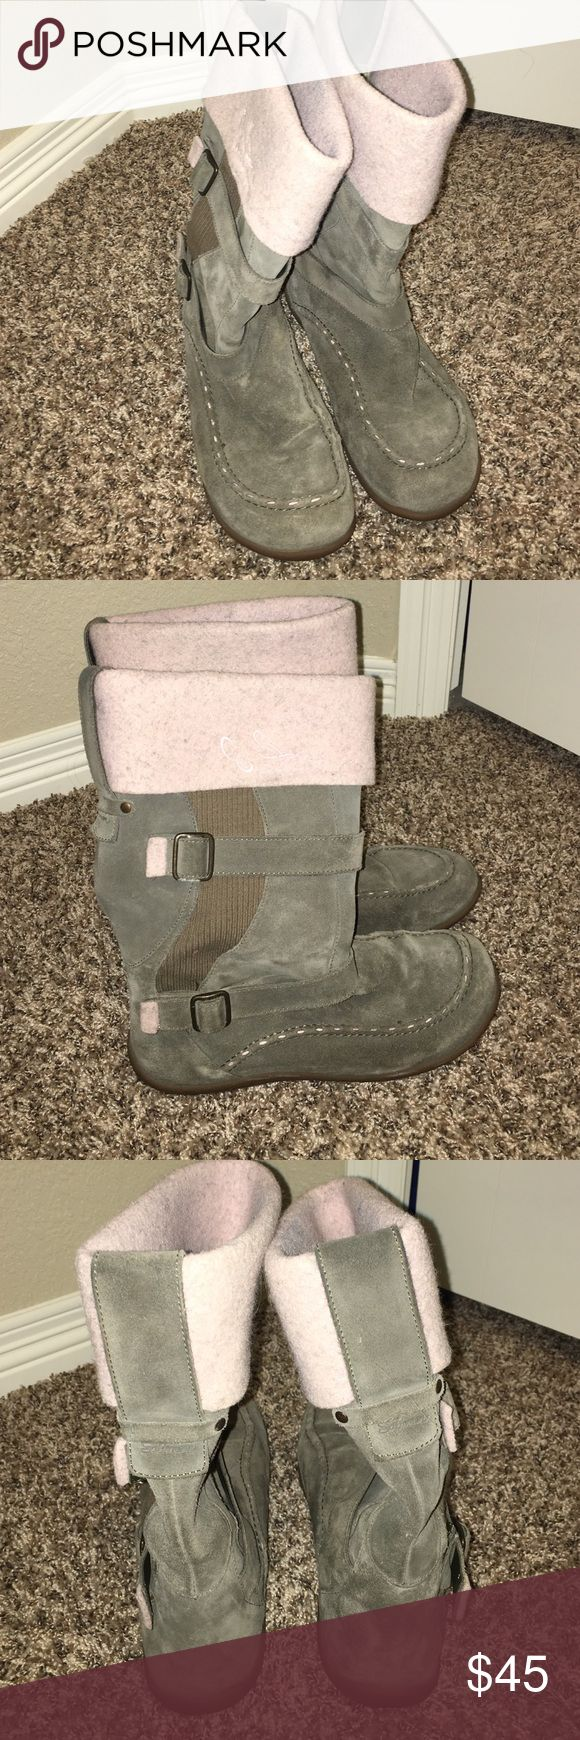 Salomon Suede Winter Boots Awesome Salomon boots. Suede is a greenish gray with pink cuff at the top. Beautiful buckle and stitch detailing. Only worn a couple of times! These boots are so pretty! Salomon Shoes Winter & Rain Boots